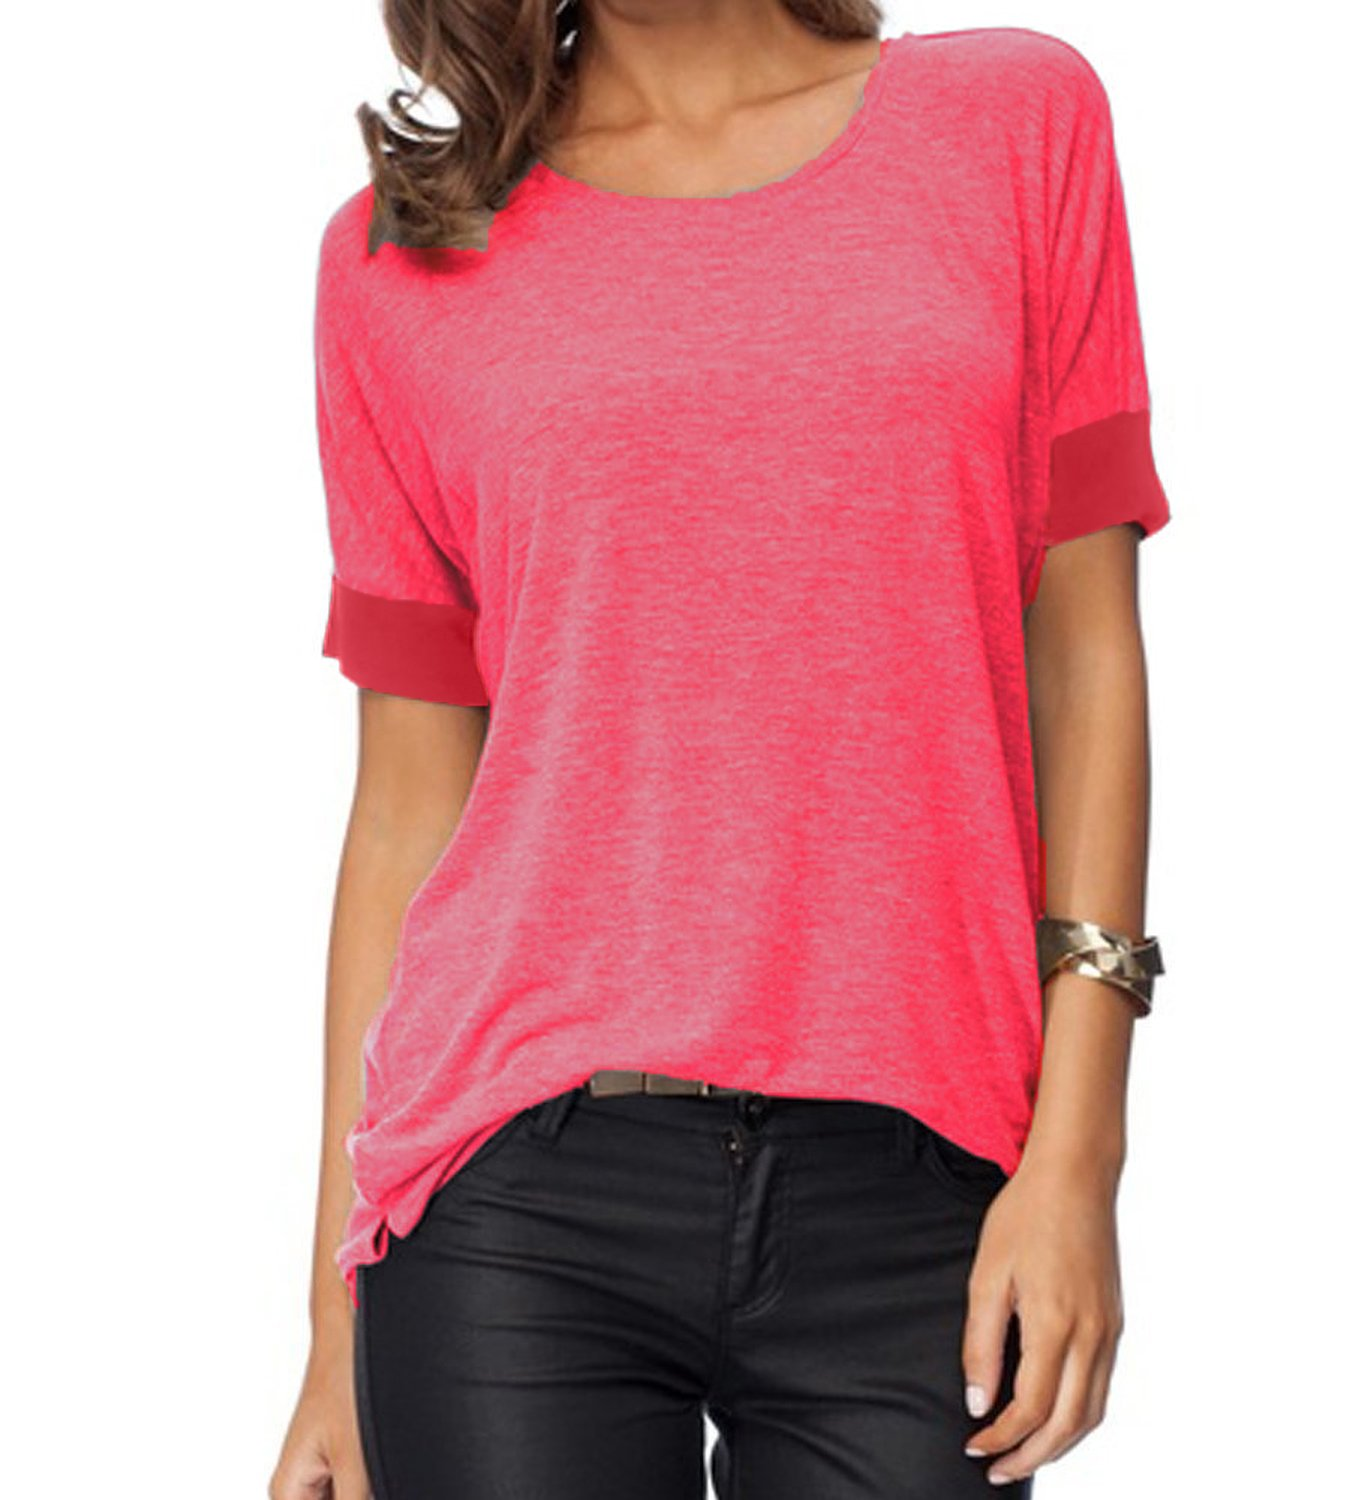 Sarin Mathews Women's Casual Round Neck Loose Fit Short Sleeve T-Shirt Blouse Tops Watermelonred XL